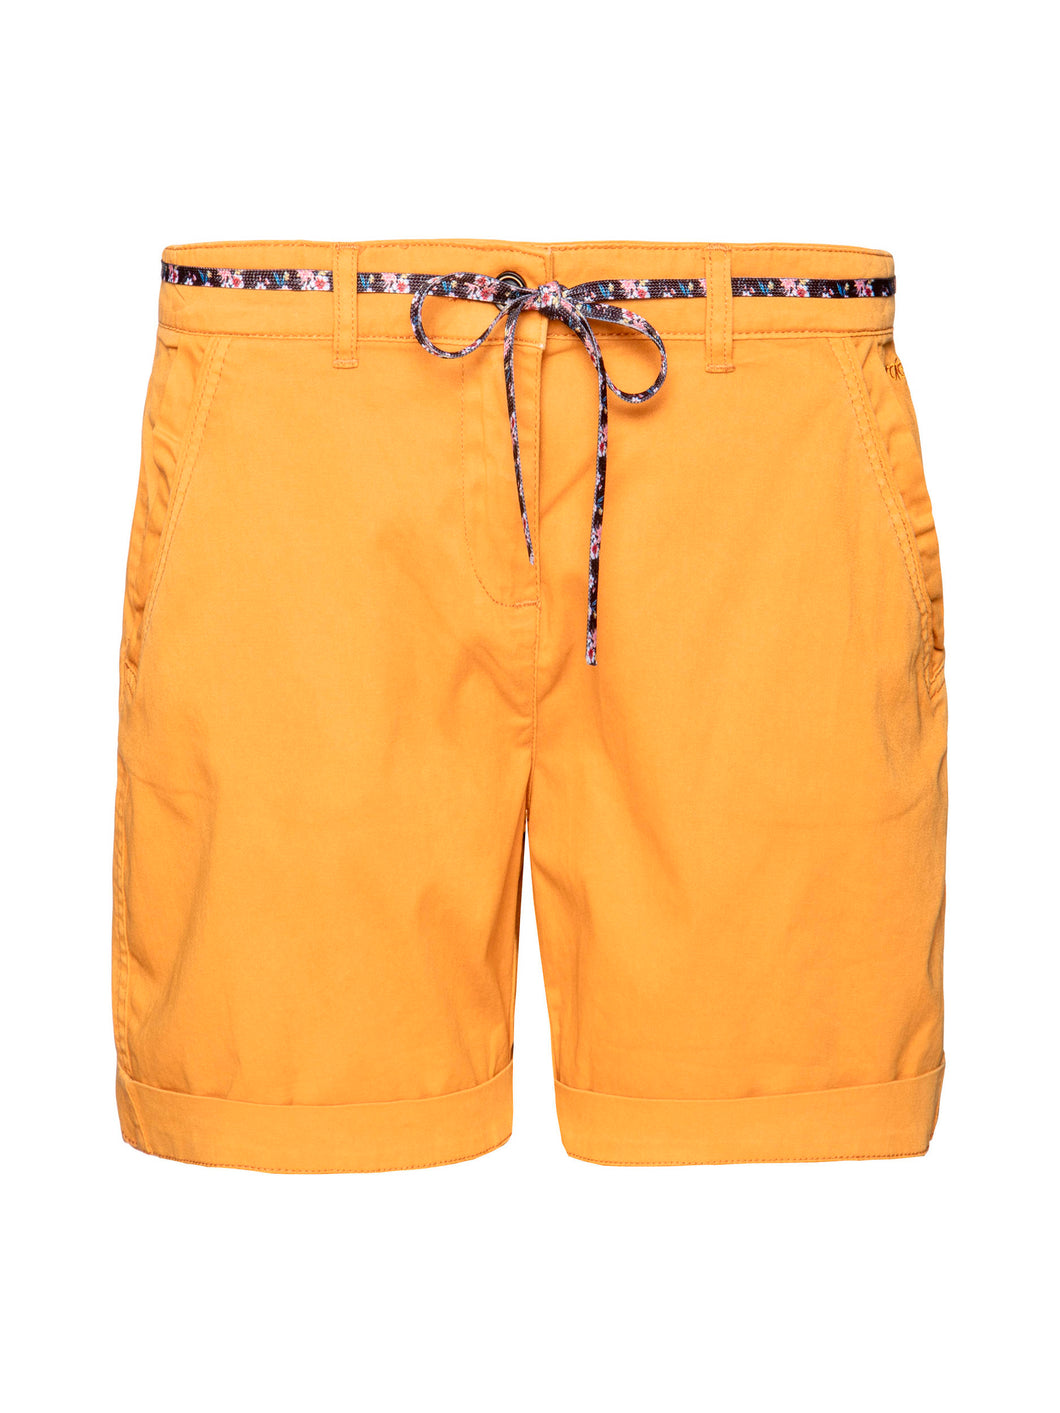 Protest Pecan Shorts in Nut